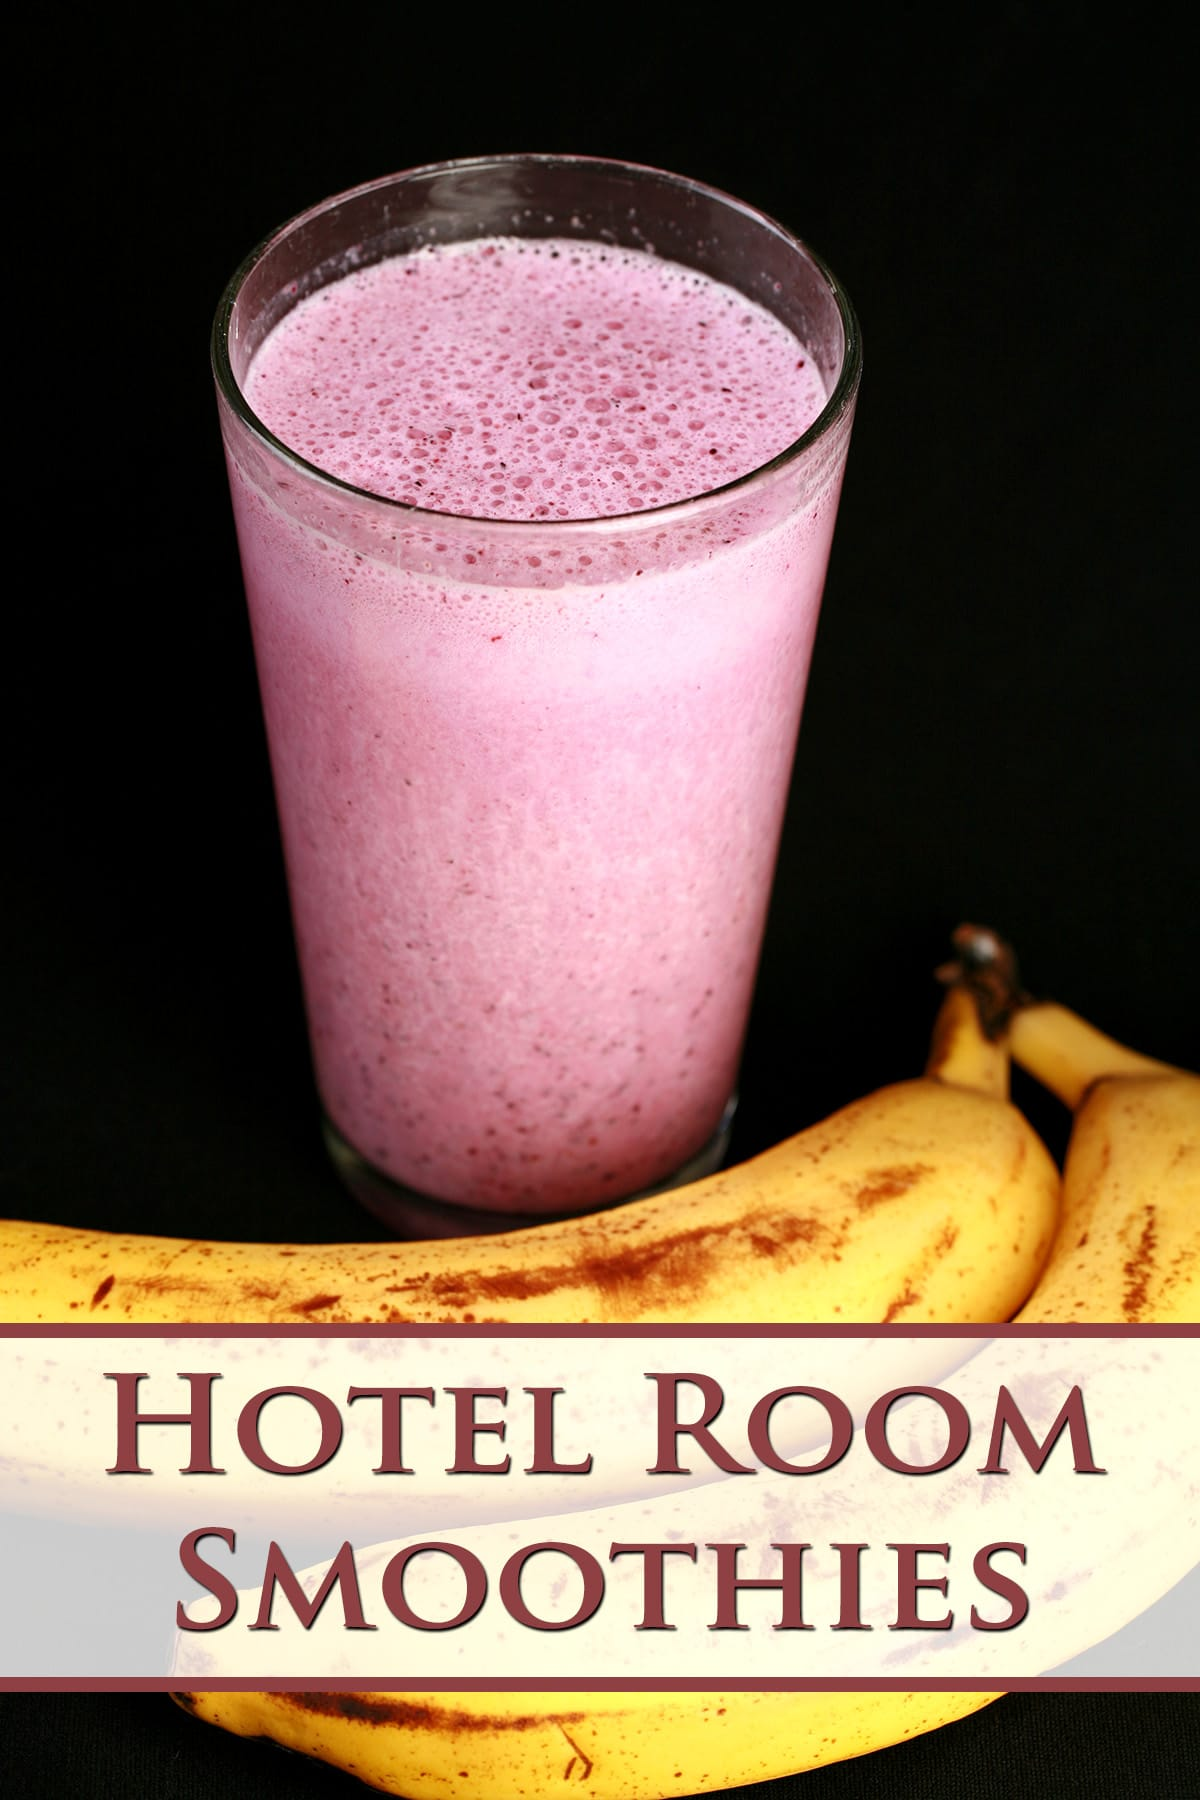 A pink convention smoothie in a tall glass, next to 2 bananas. Red text overlay says hotel room smoothies.